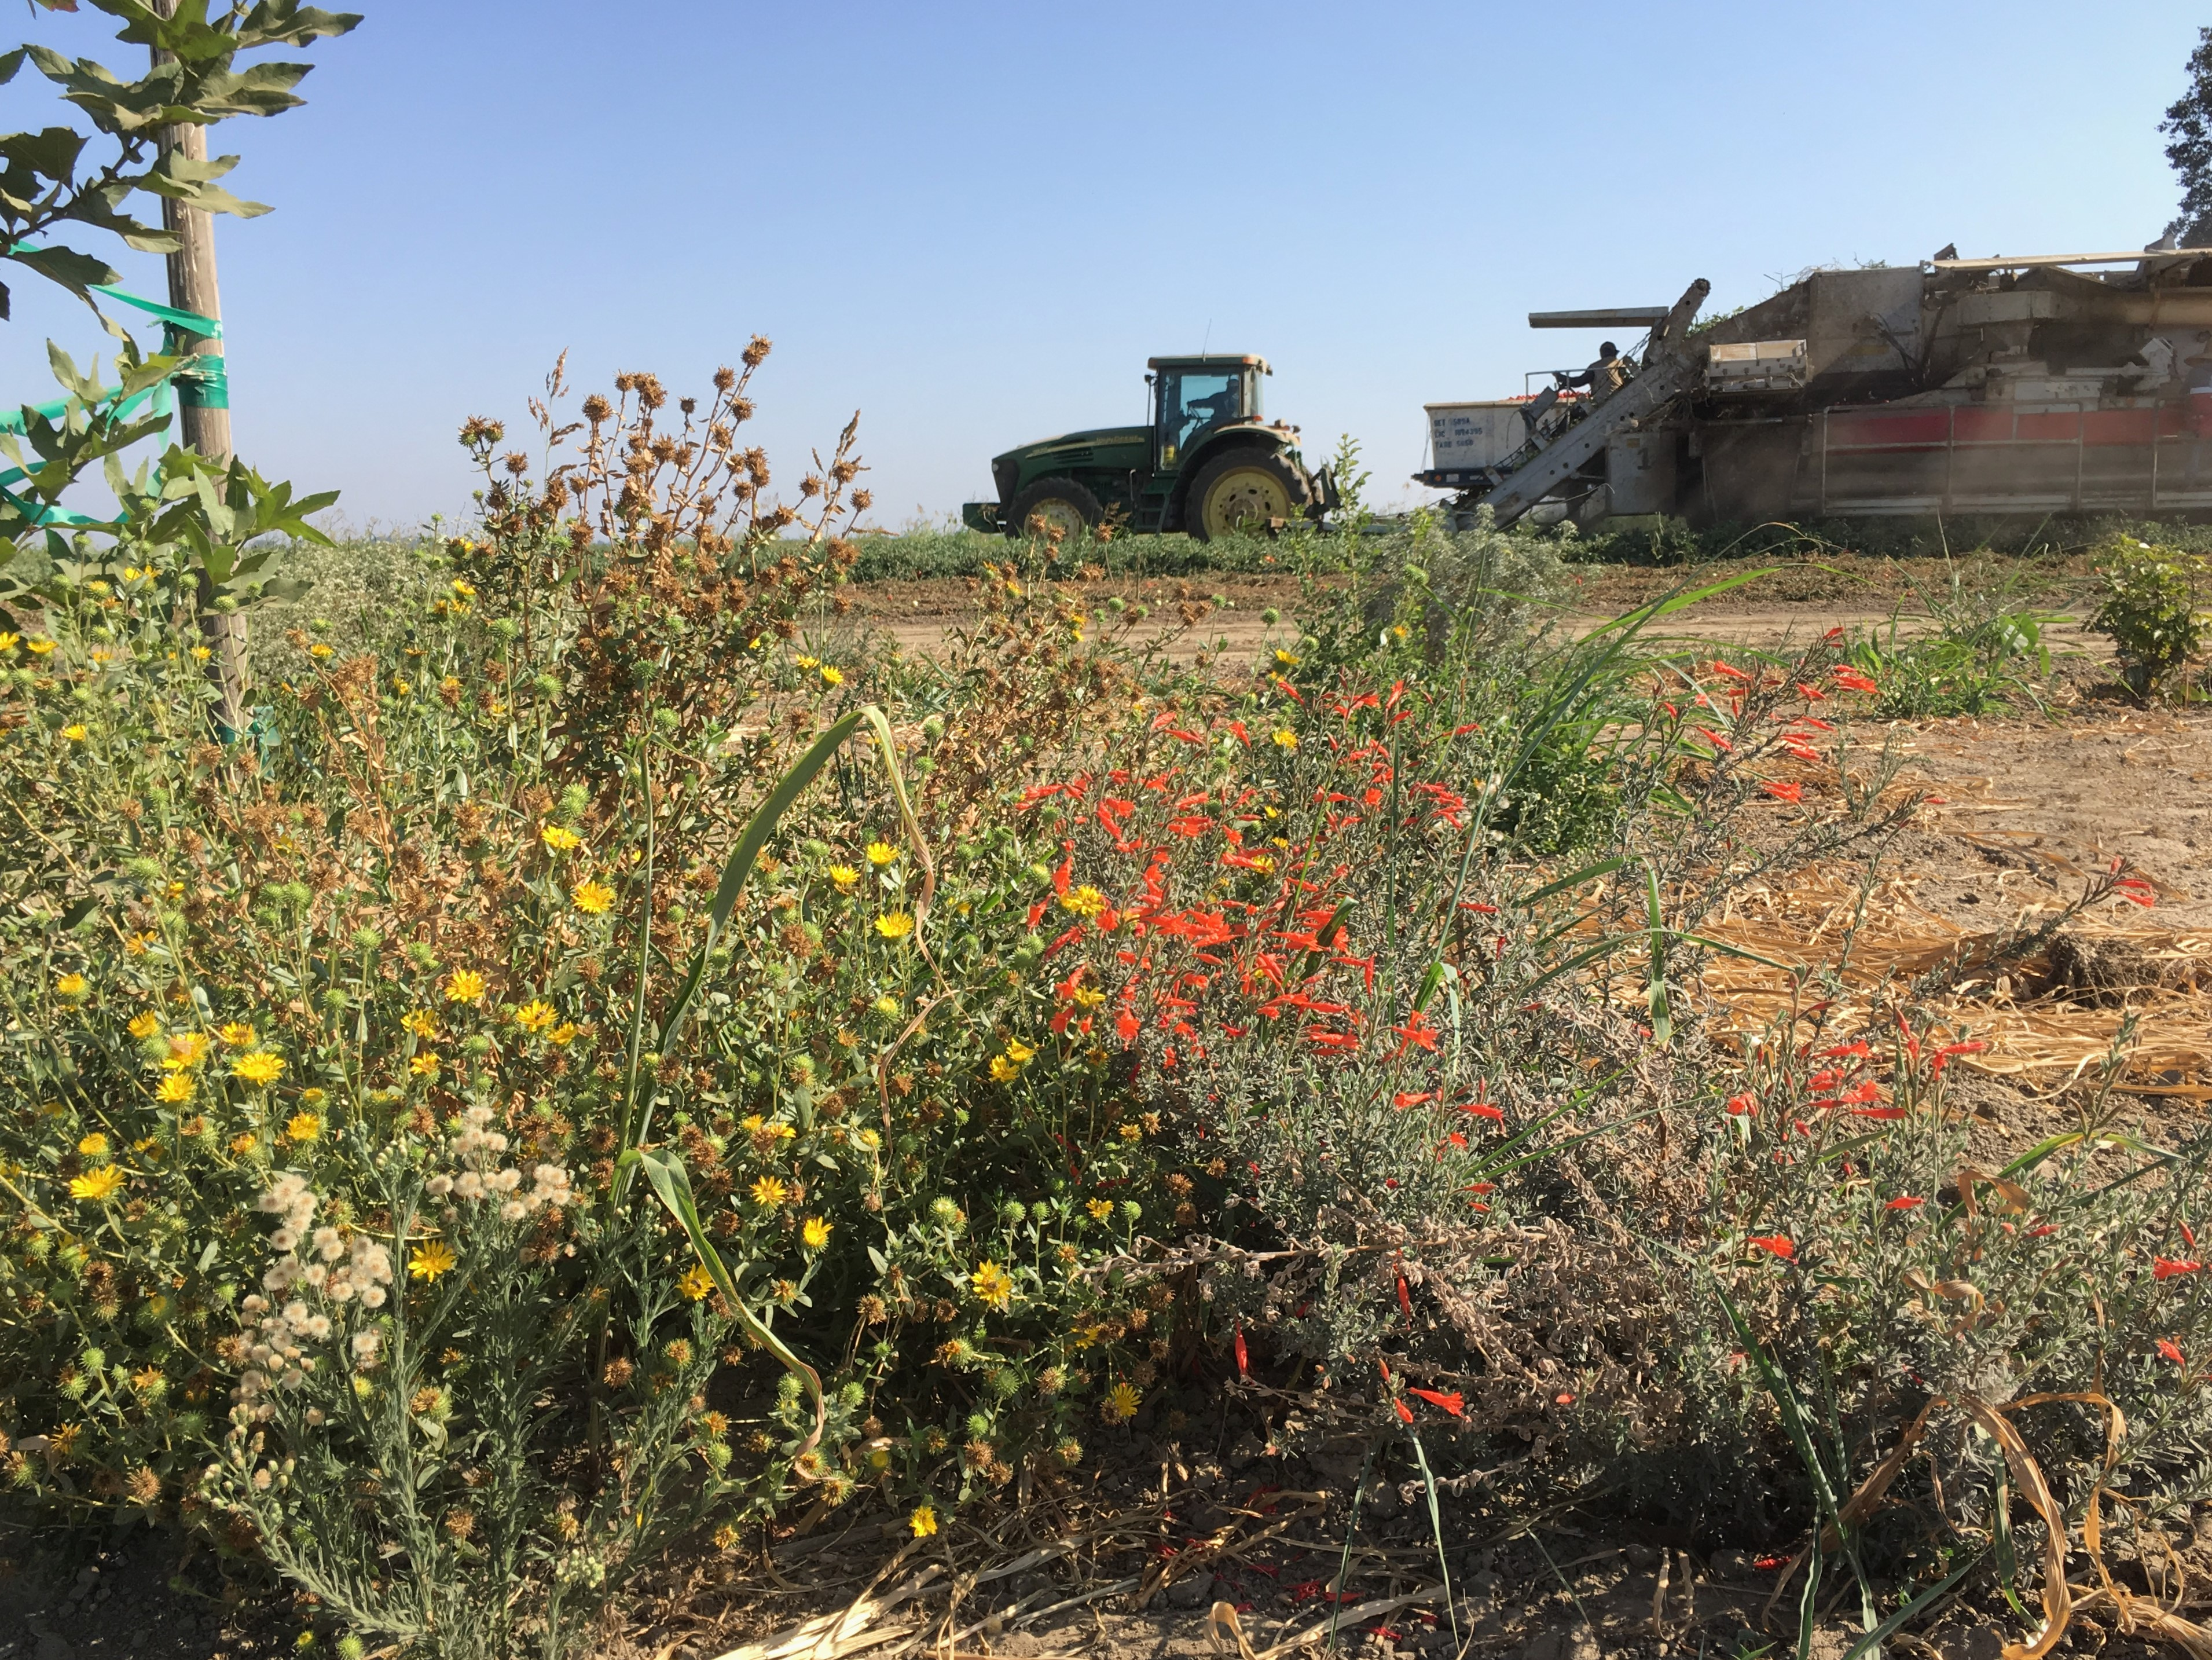 A brown, arid landscape is colored by a hedgerow with a diversity of flowers, including some vibrant red blooms. Behind the hedgerow is a tractor and some other large farming equipment.